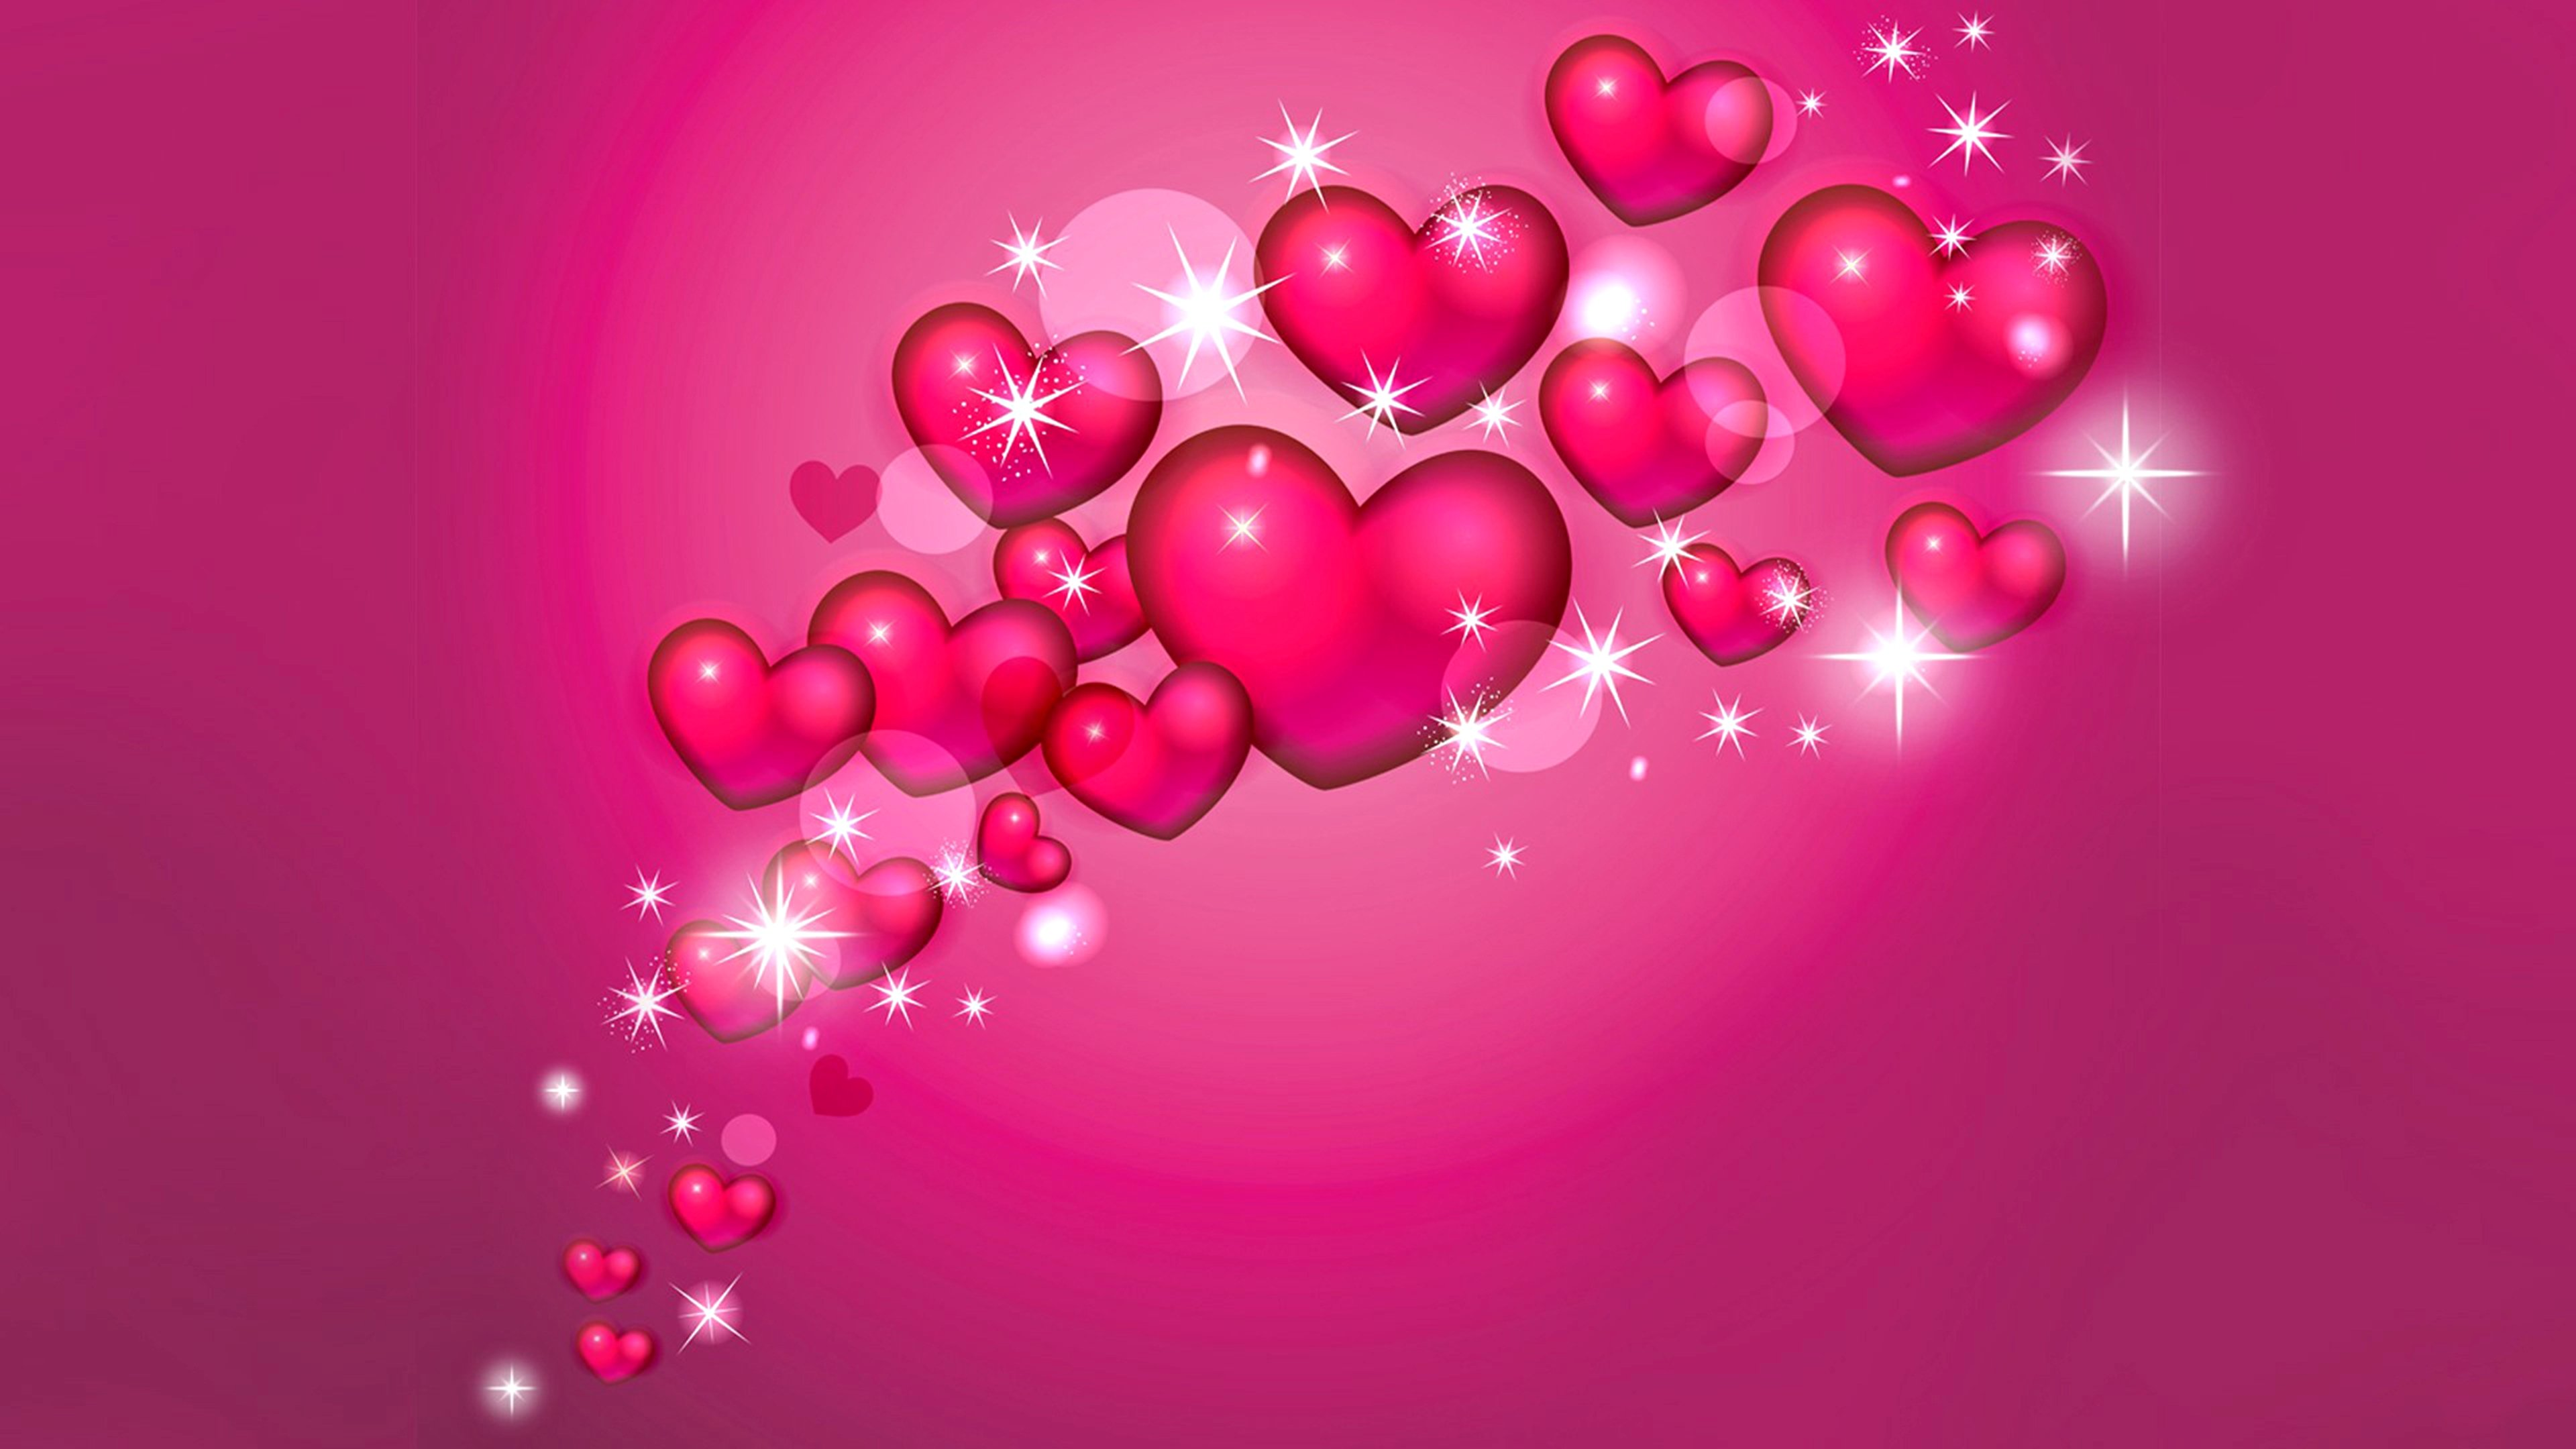 Love Wallpaper Uhd : Heart Wallpapers, Pictures, Images